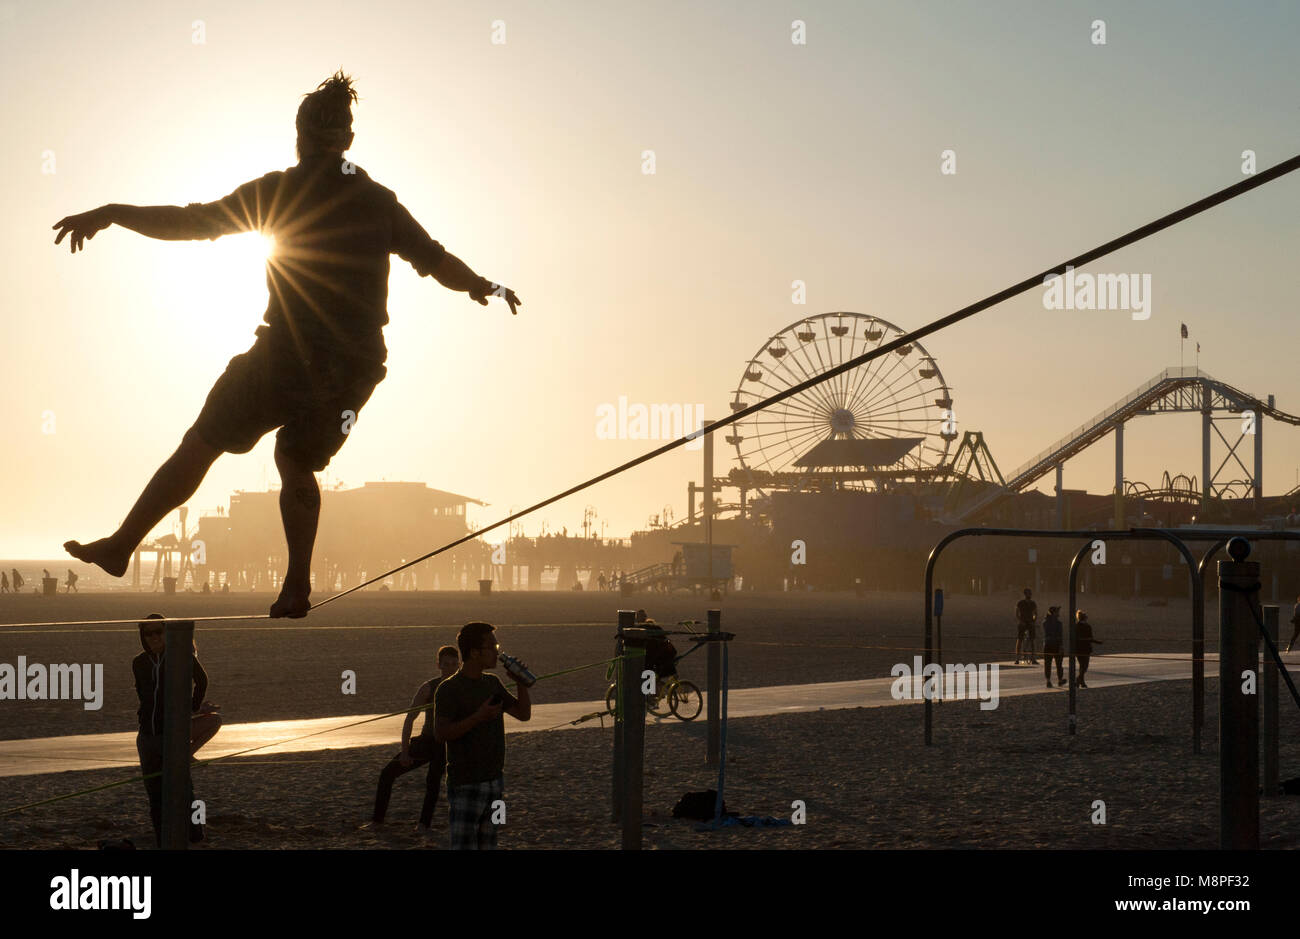 Man üben am Seil am Strand in der Nähe der Santa Monica Pier, Los Angeles, CA Stockbild